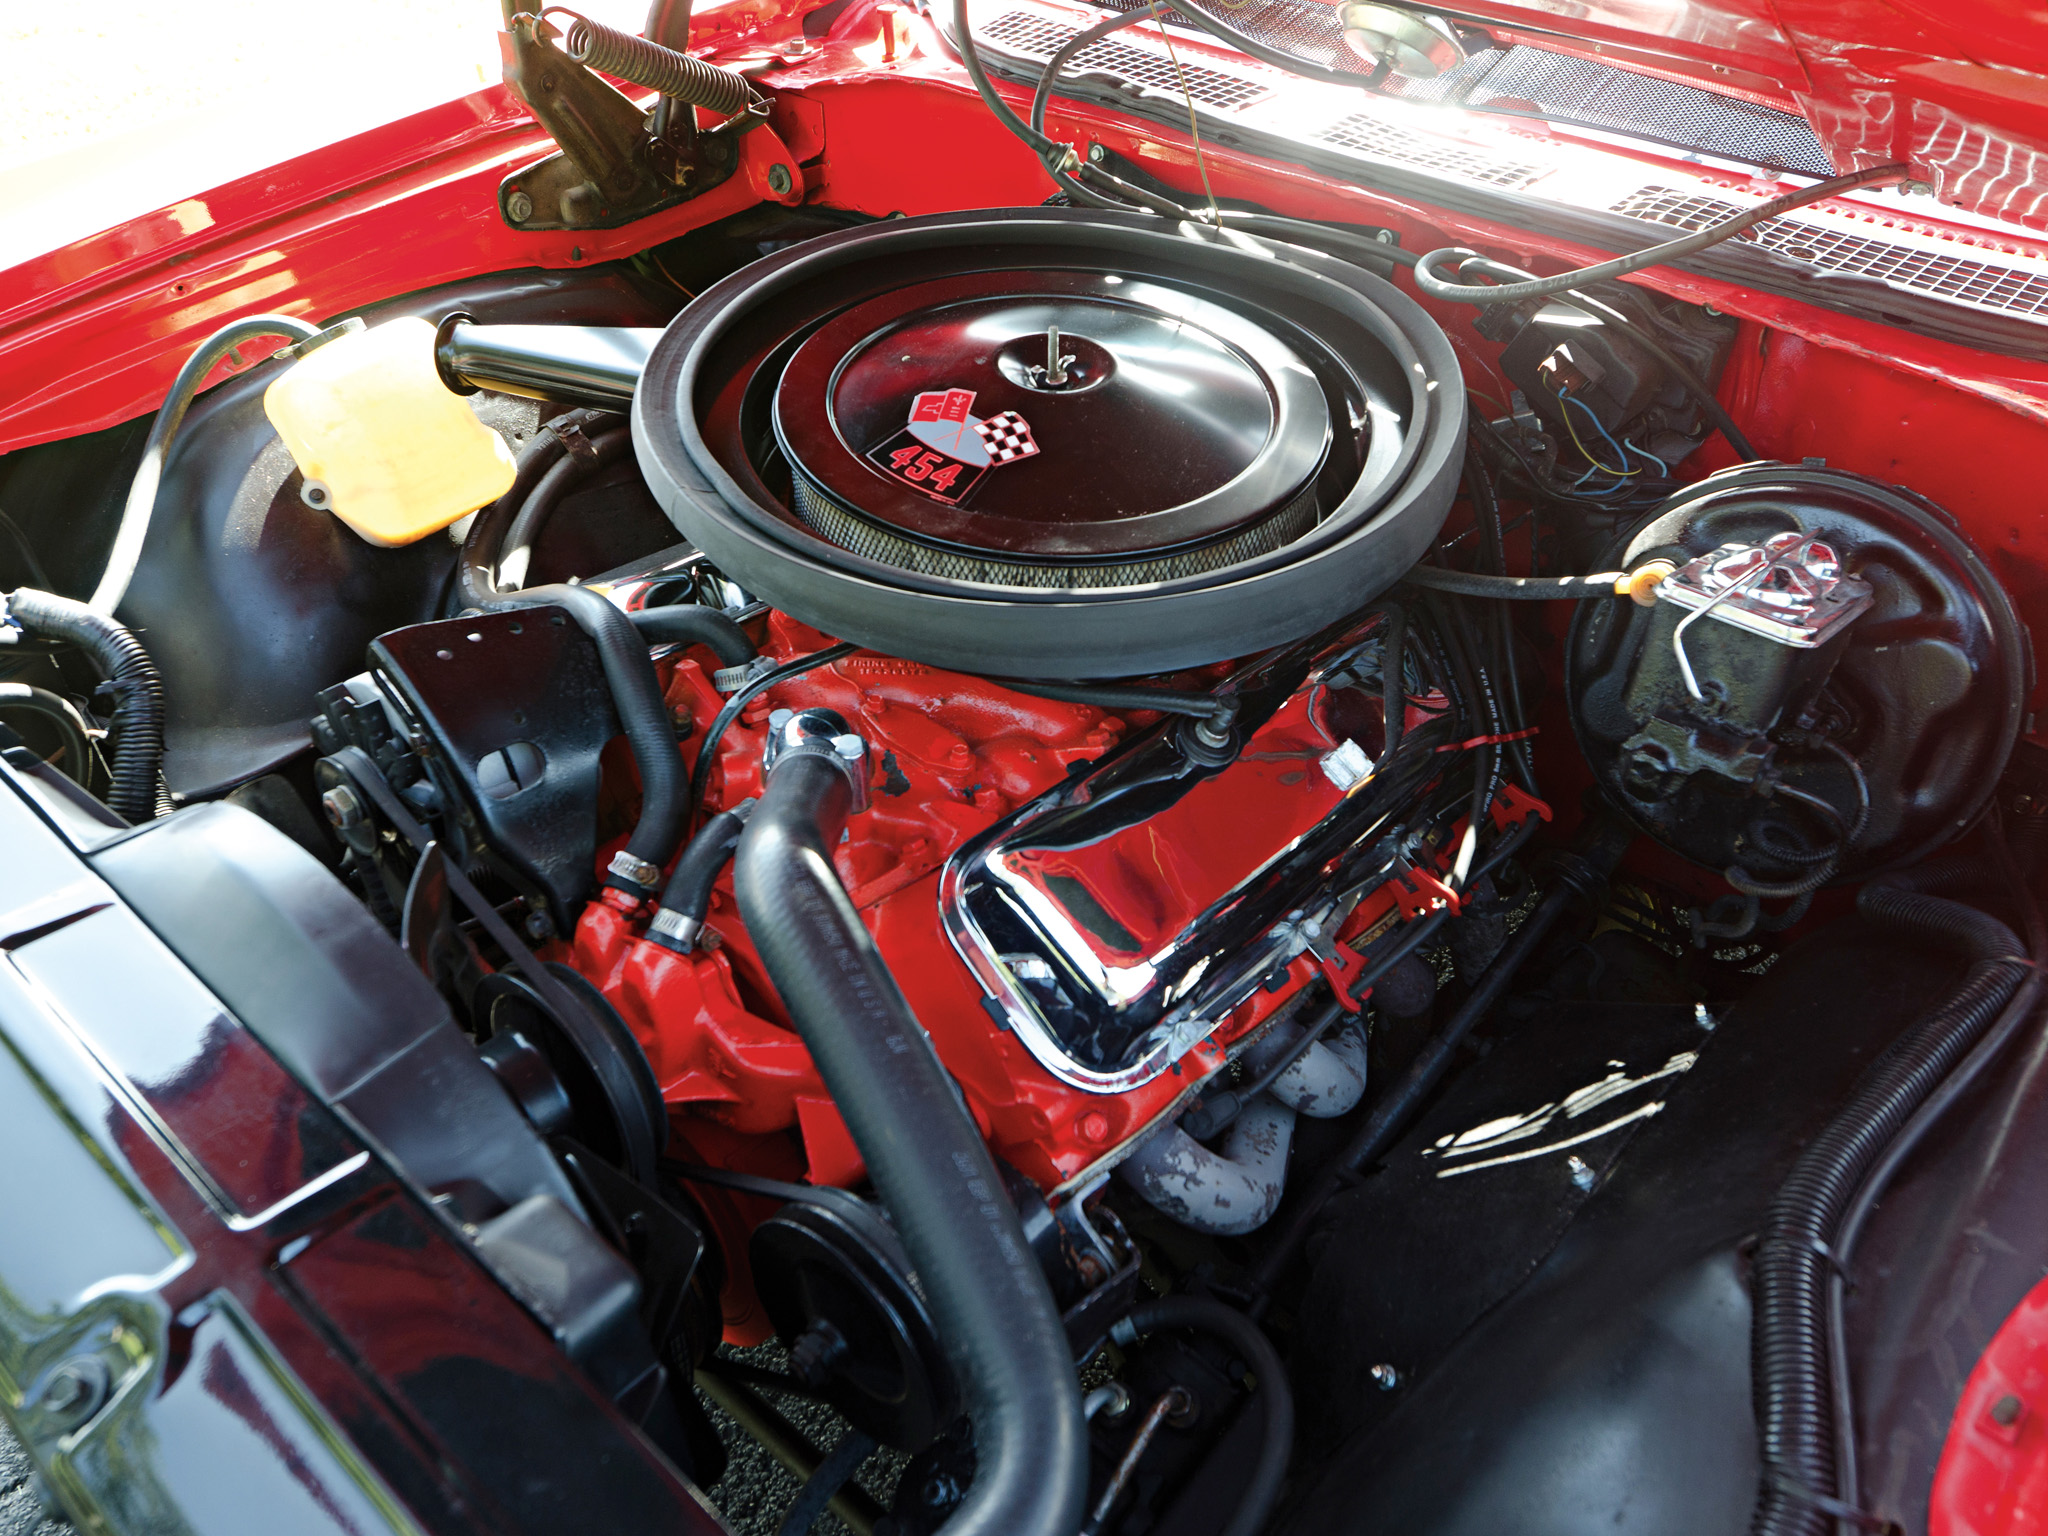 1970 chevy ls6 454 engine for sale autos post. Black Bedroom Furniture Sets. Home Design Ideas